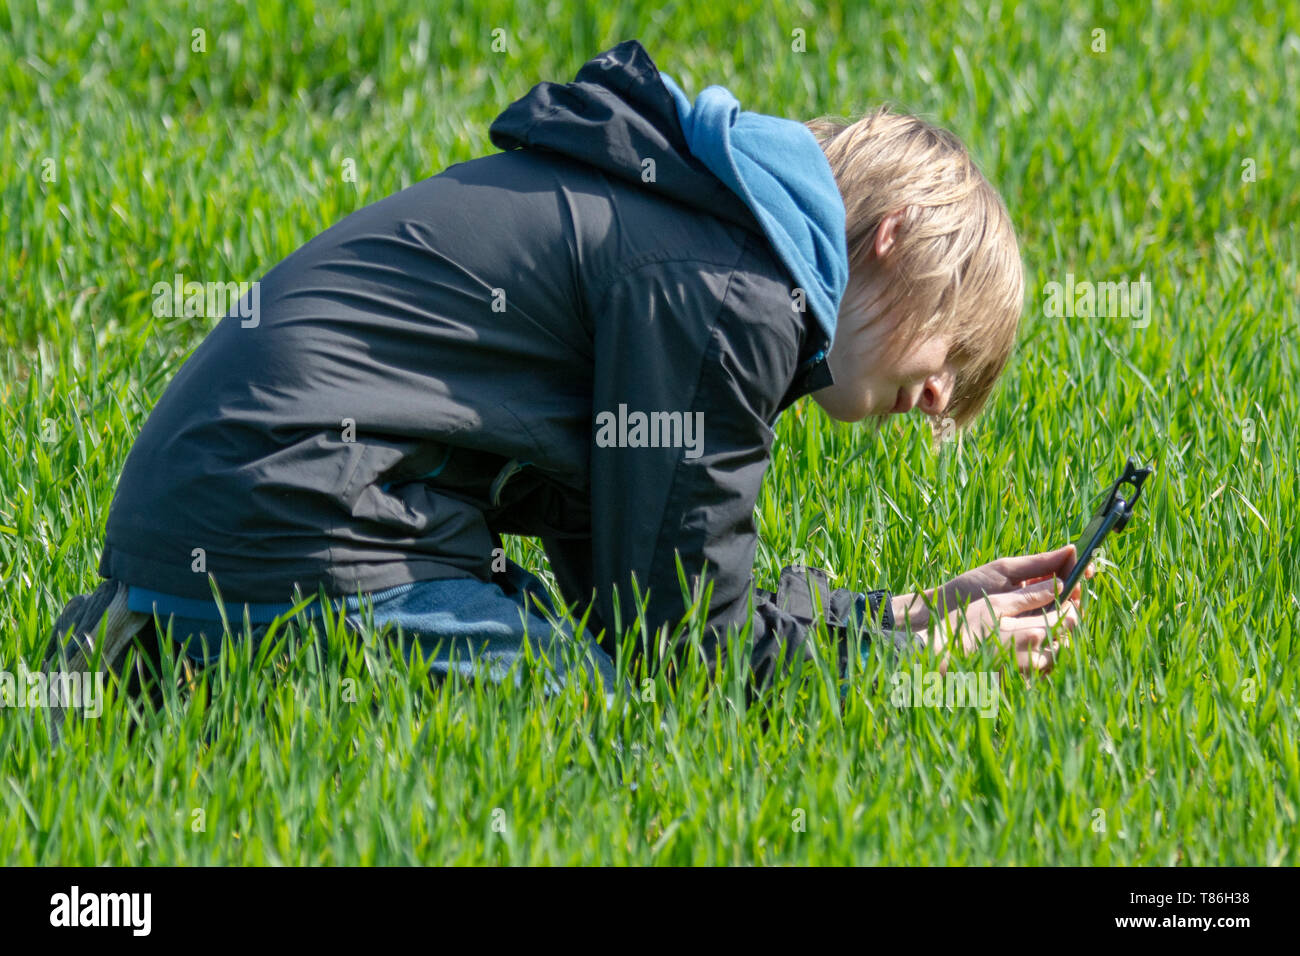 Boy using mobile phone with macro clip attachment to take pictures - Stock Image